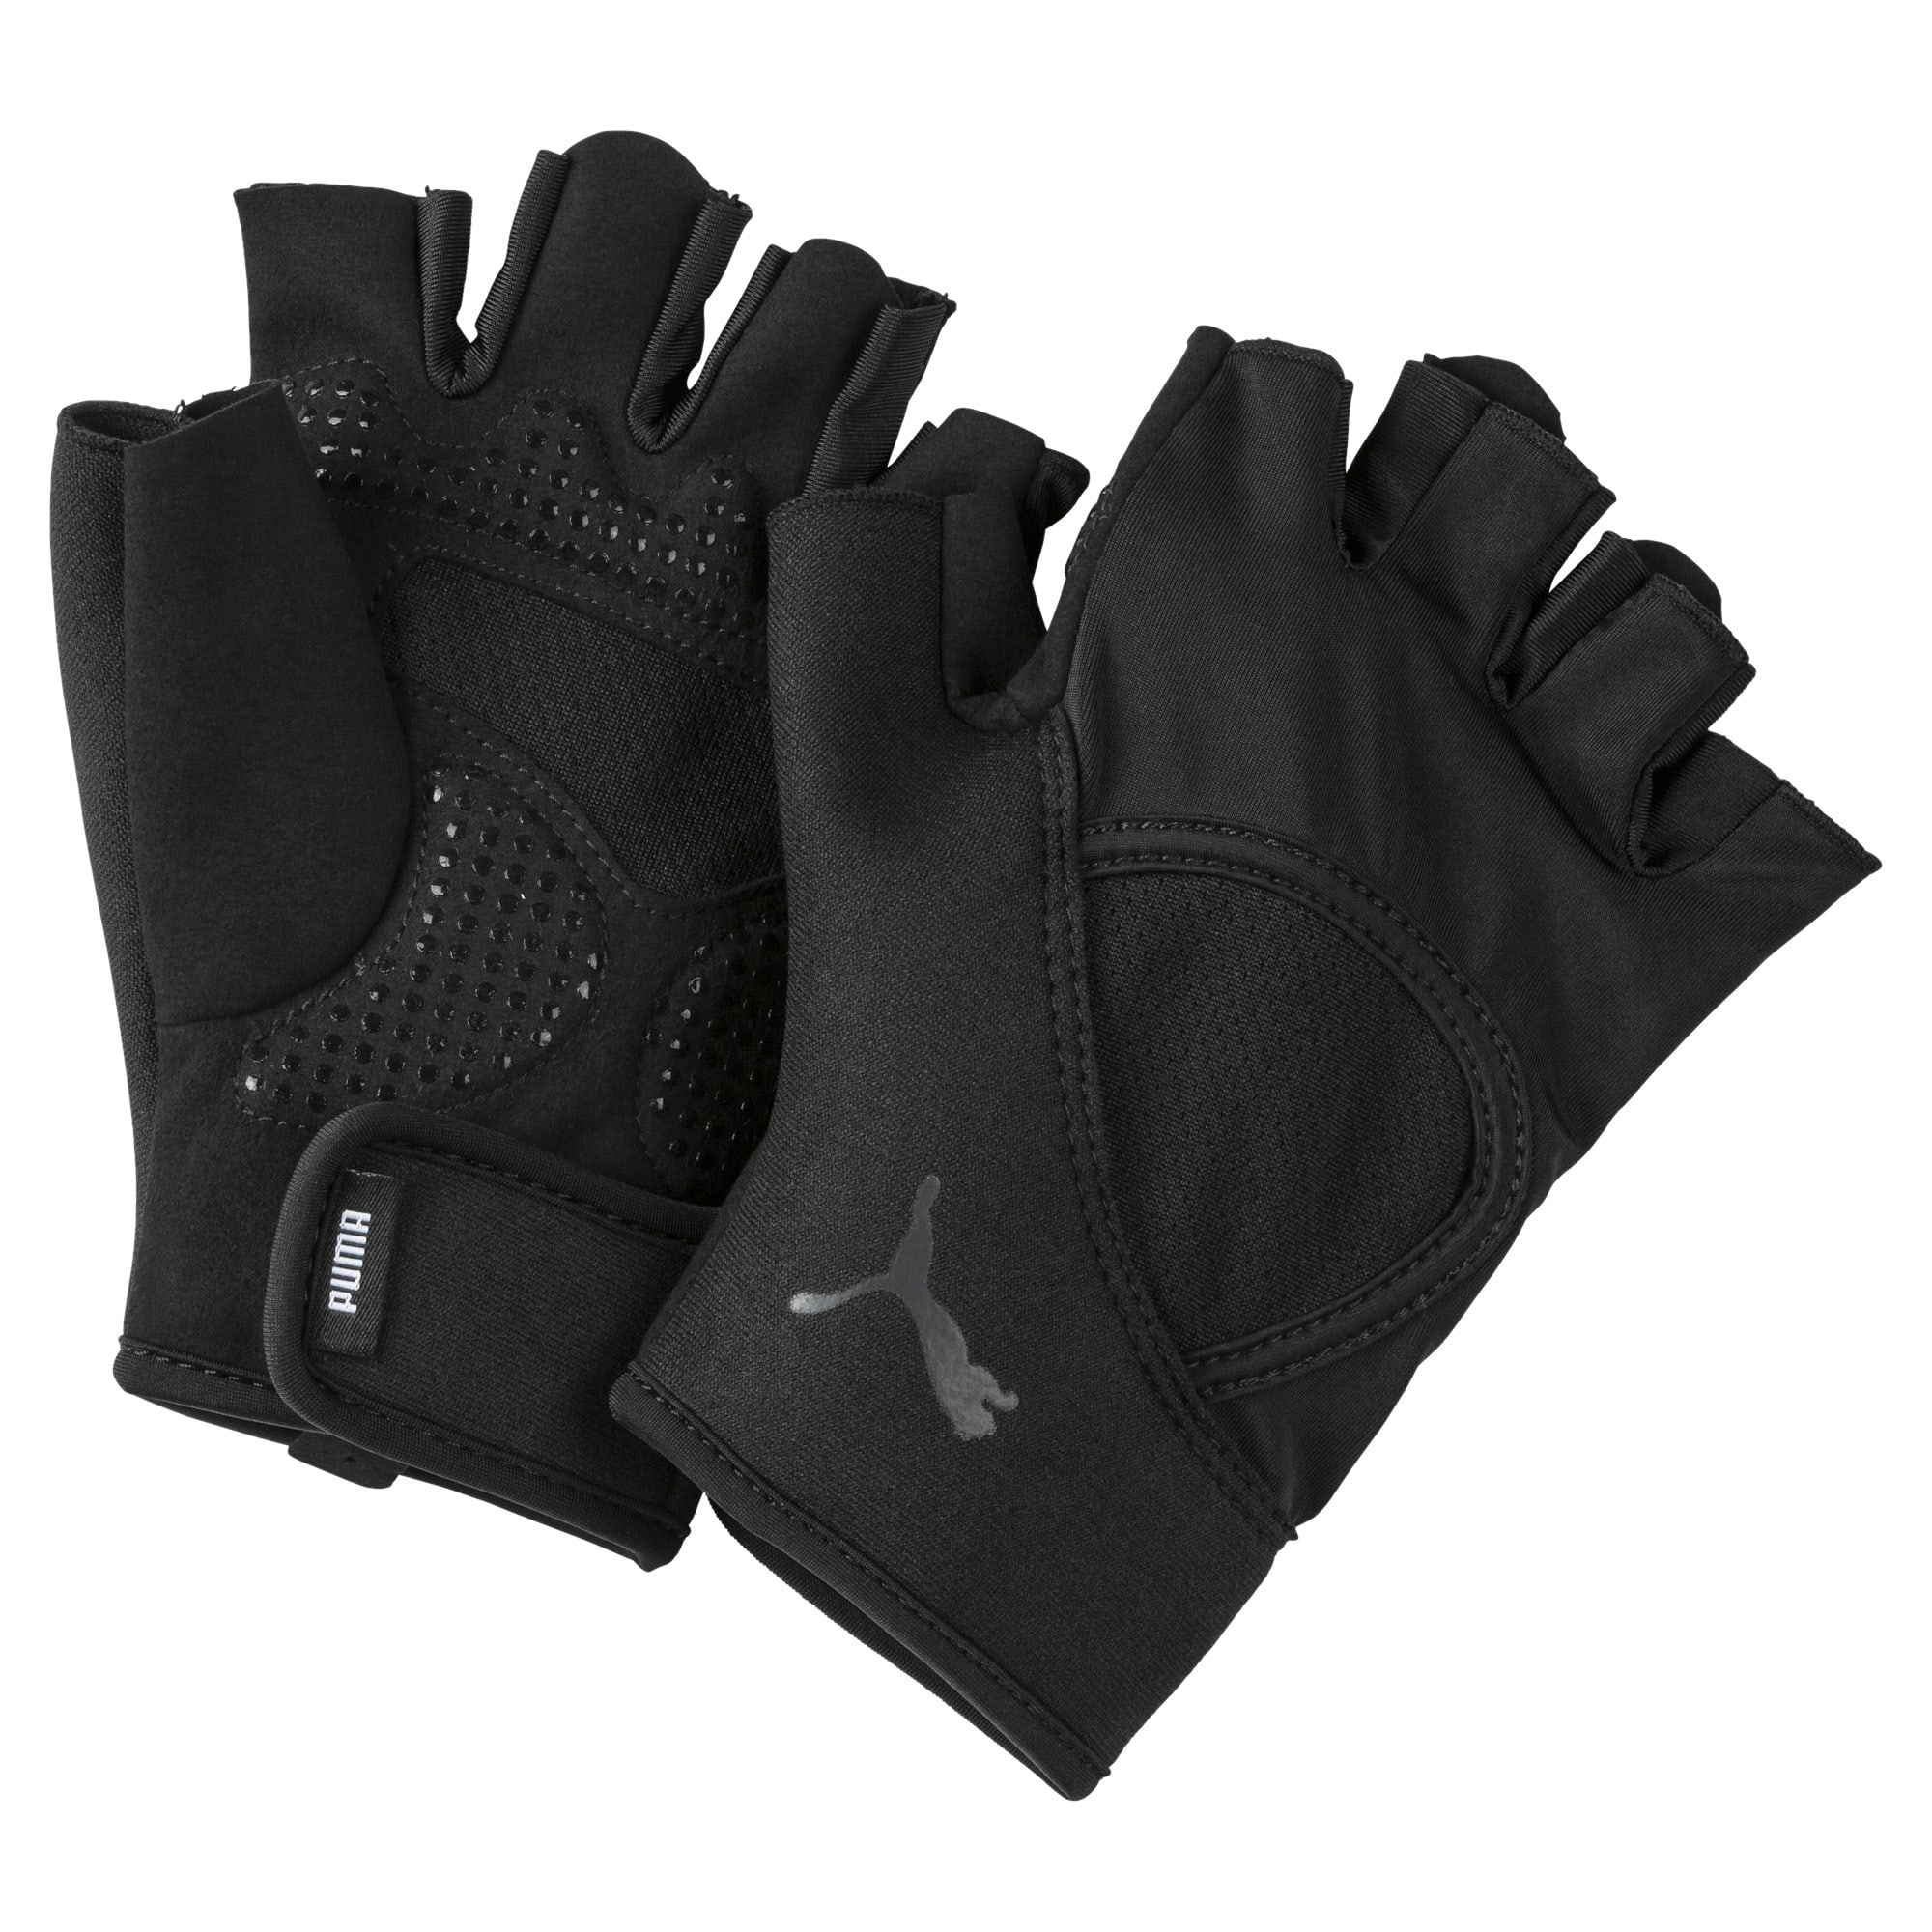 Thumbnail 1 of Essential Training Fingered Gloves, Puma Black, medium-IND